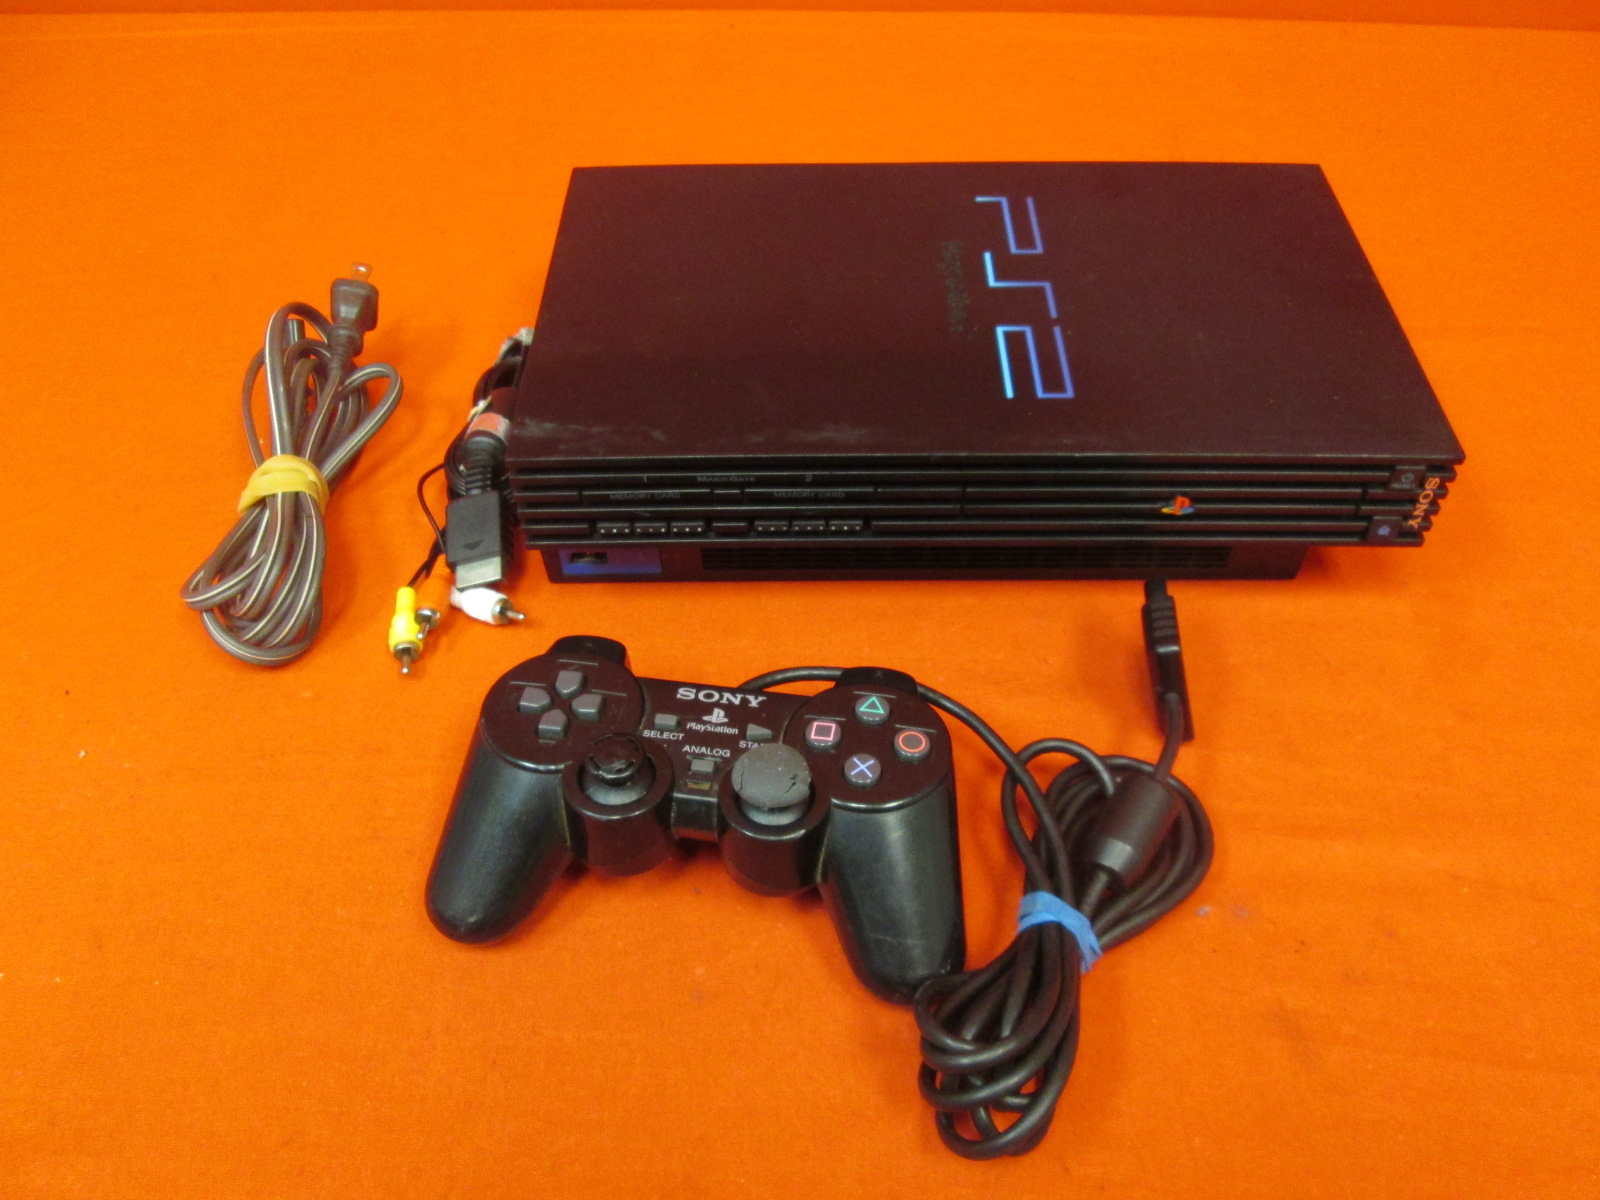 Image 0 of Sony PlayStation 2 Video Game Console With Controller